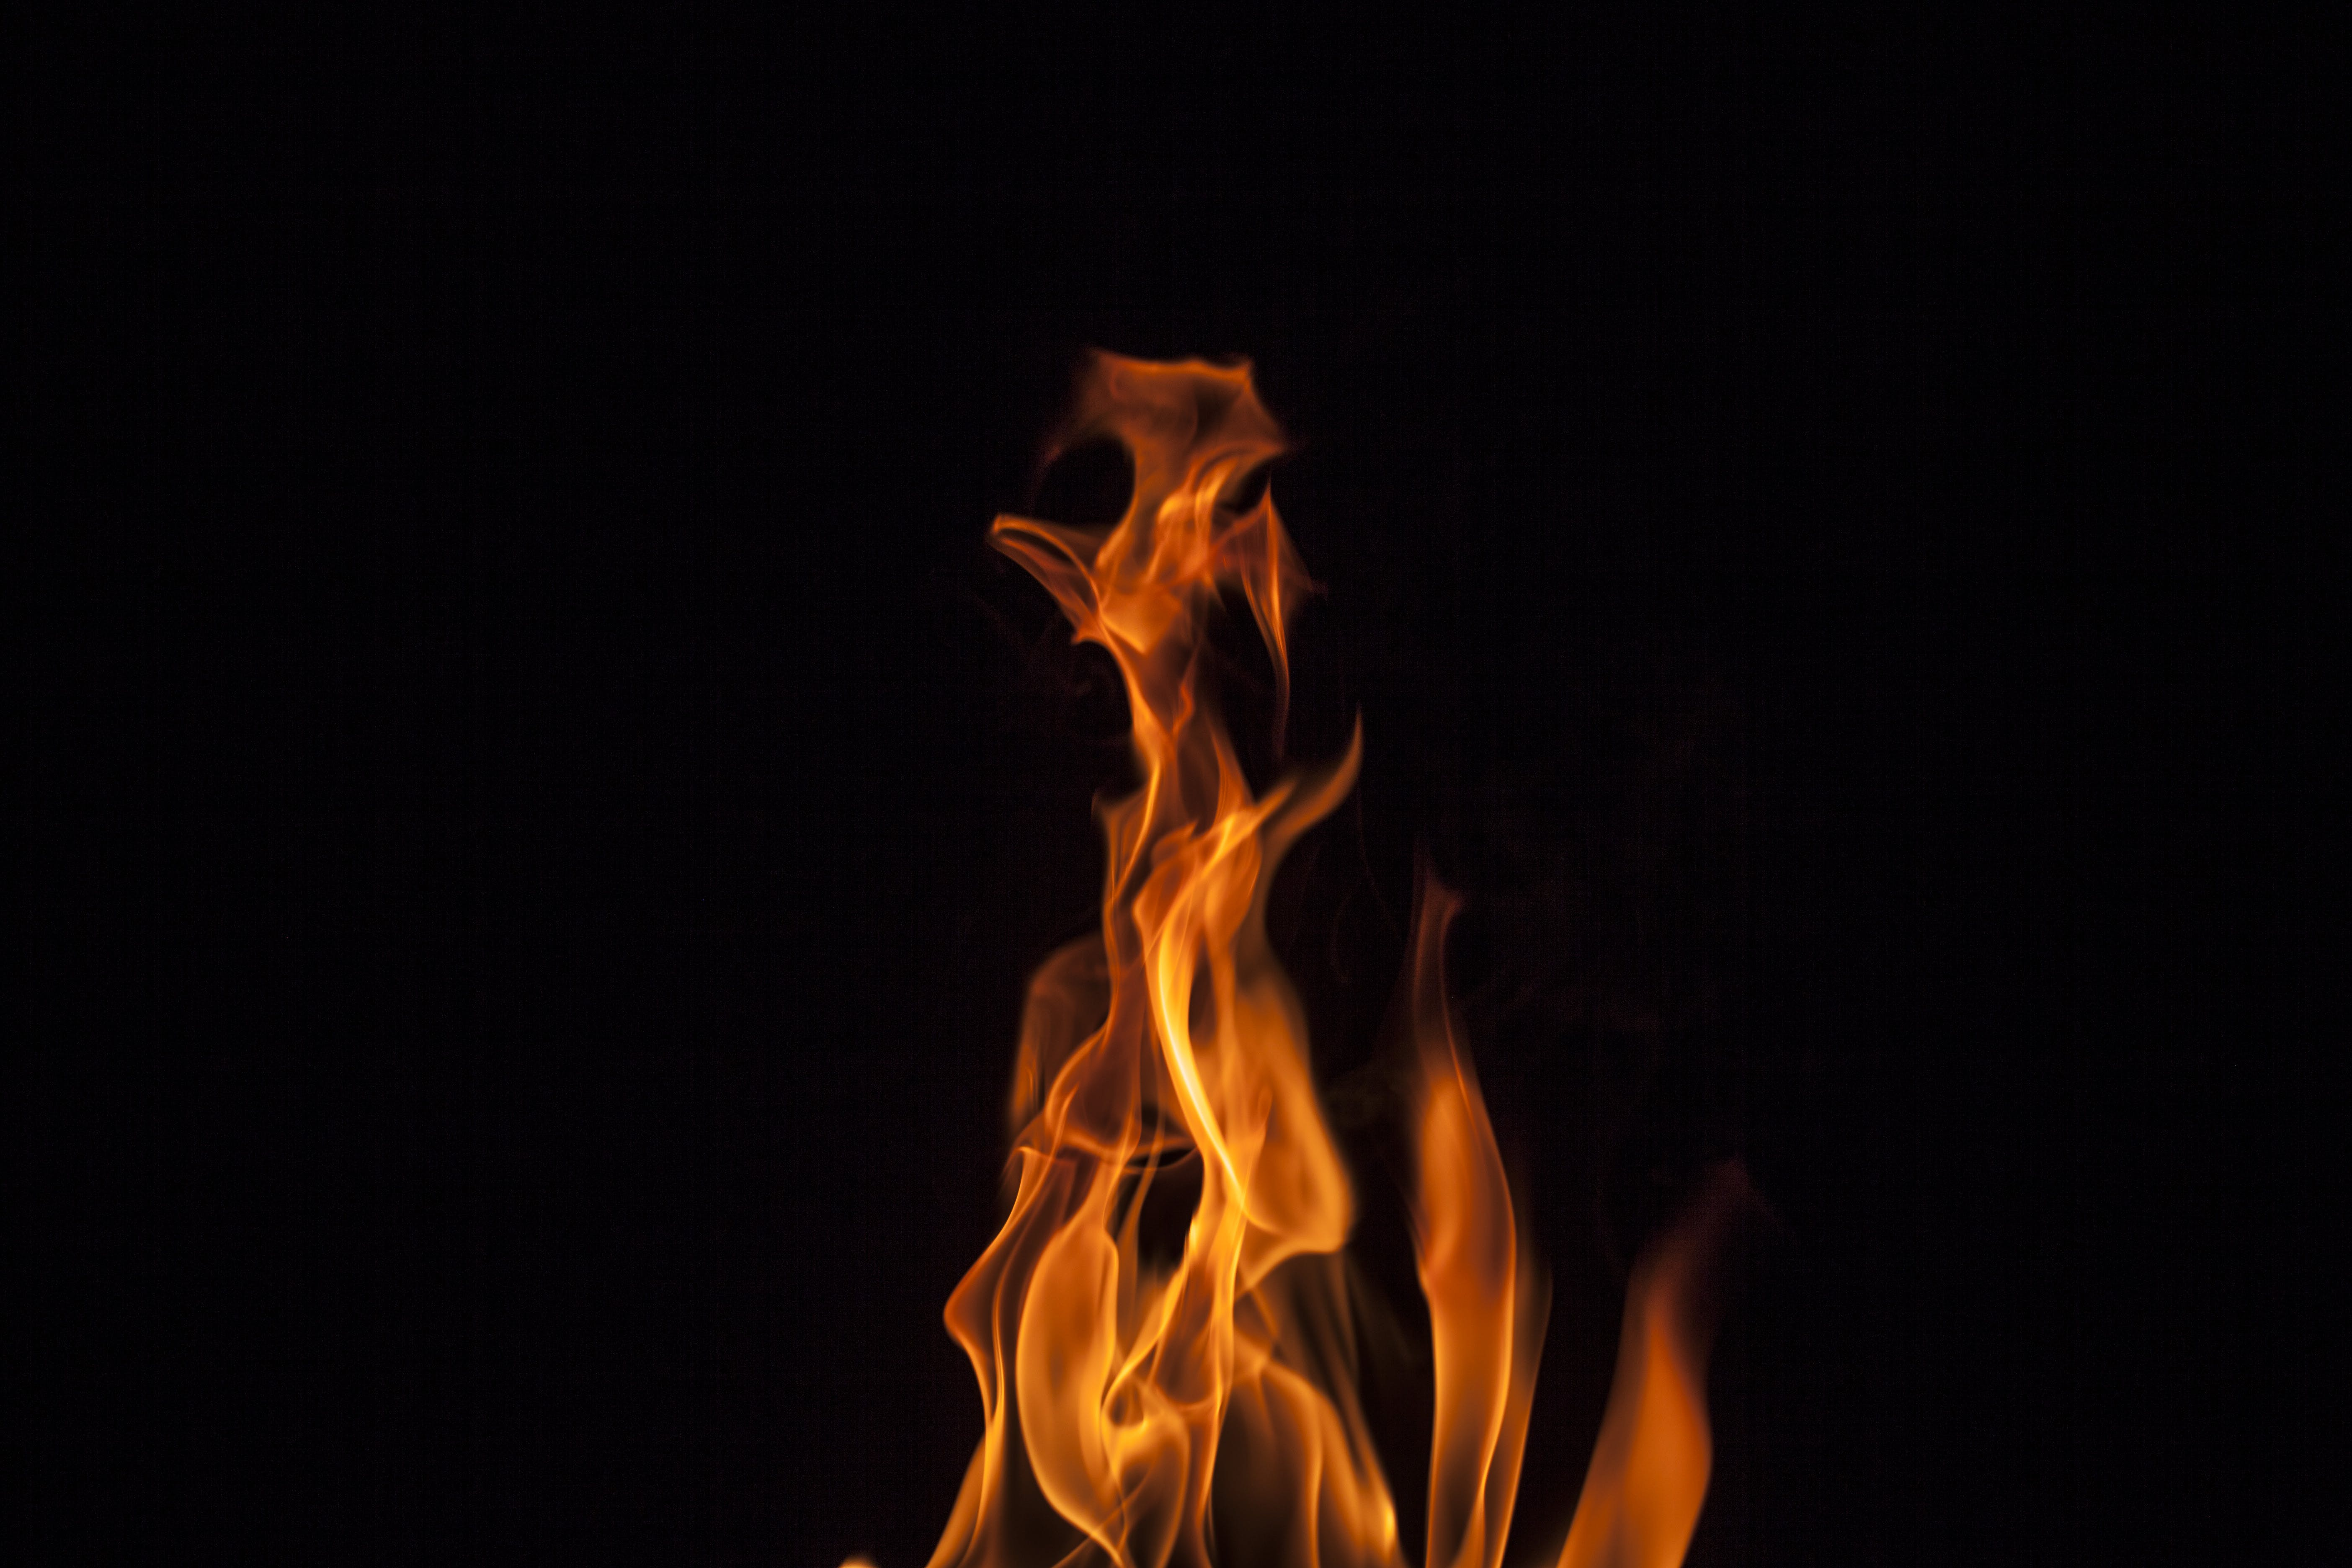 Closeup Photo of Fire during Night Time